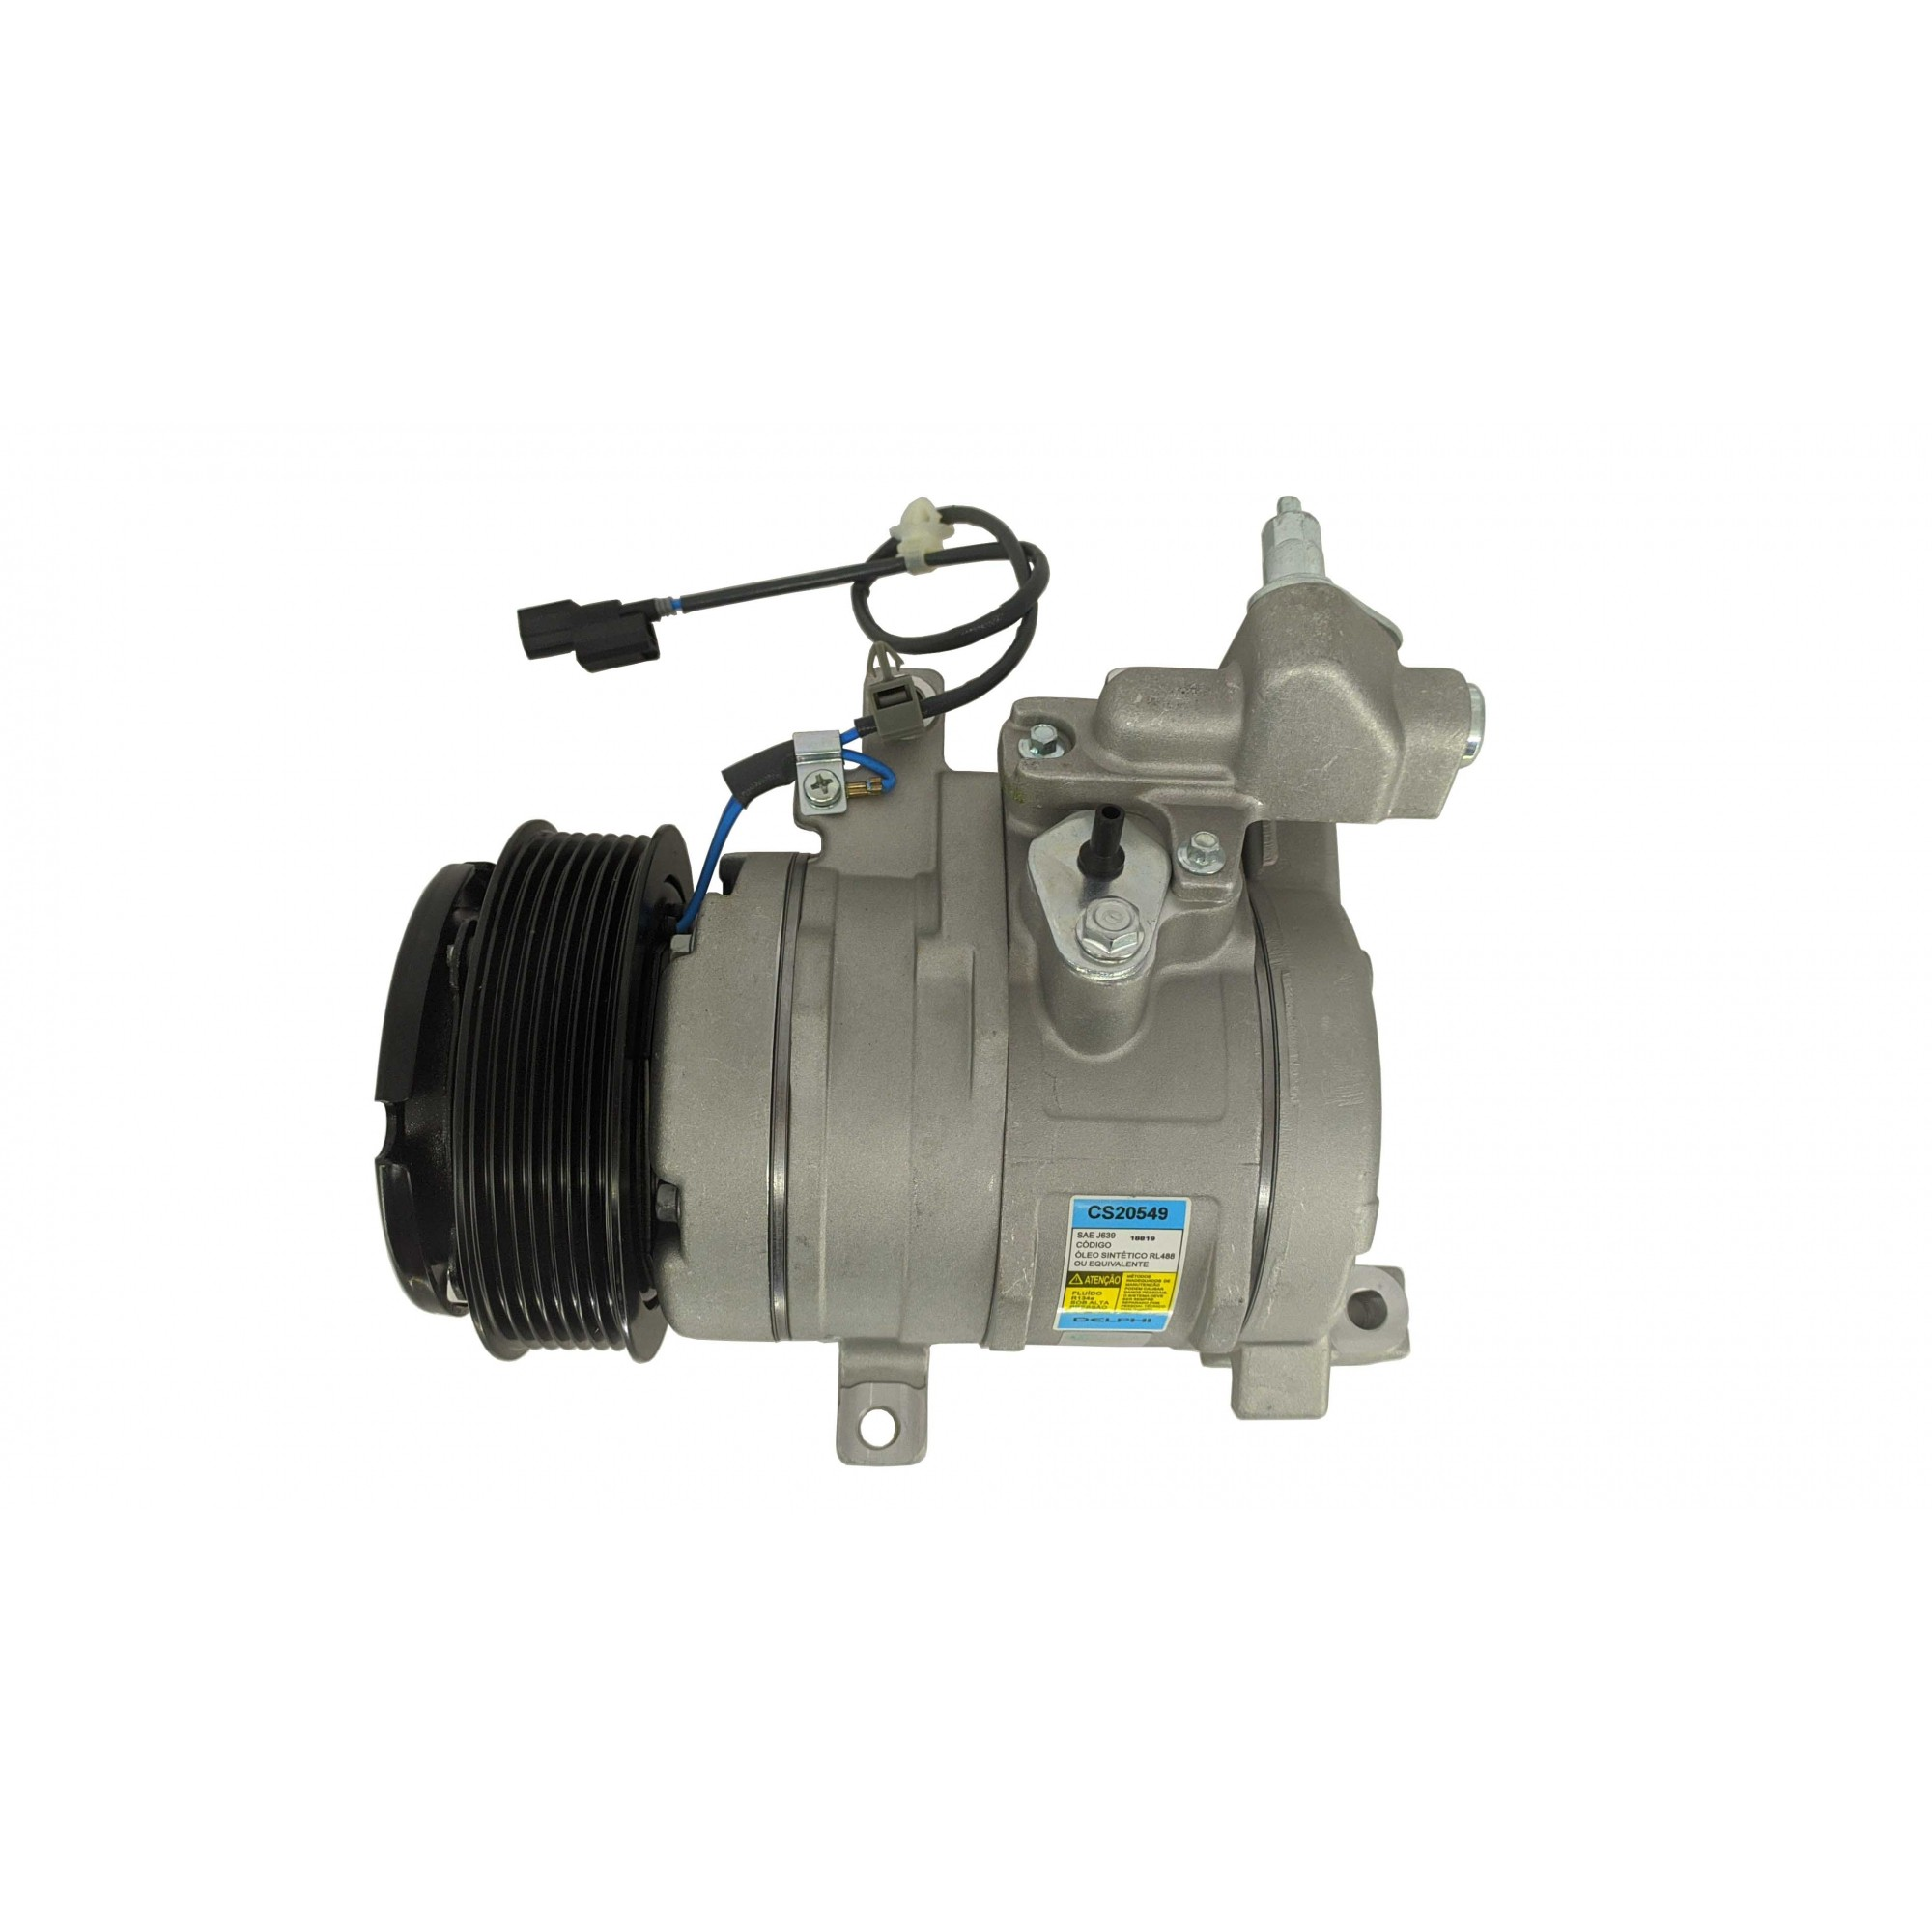 Compressor Civic 2007 Até 2012 - Original DELPHI